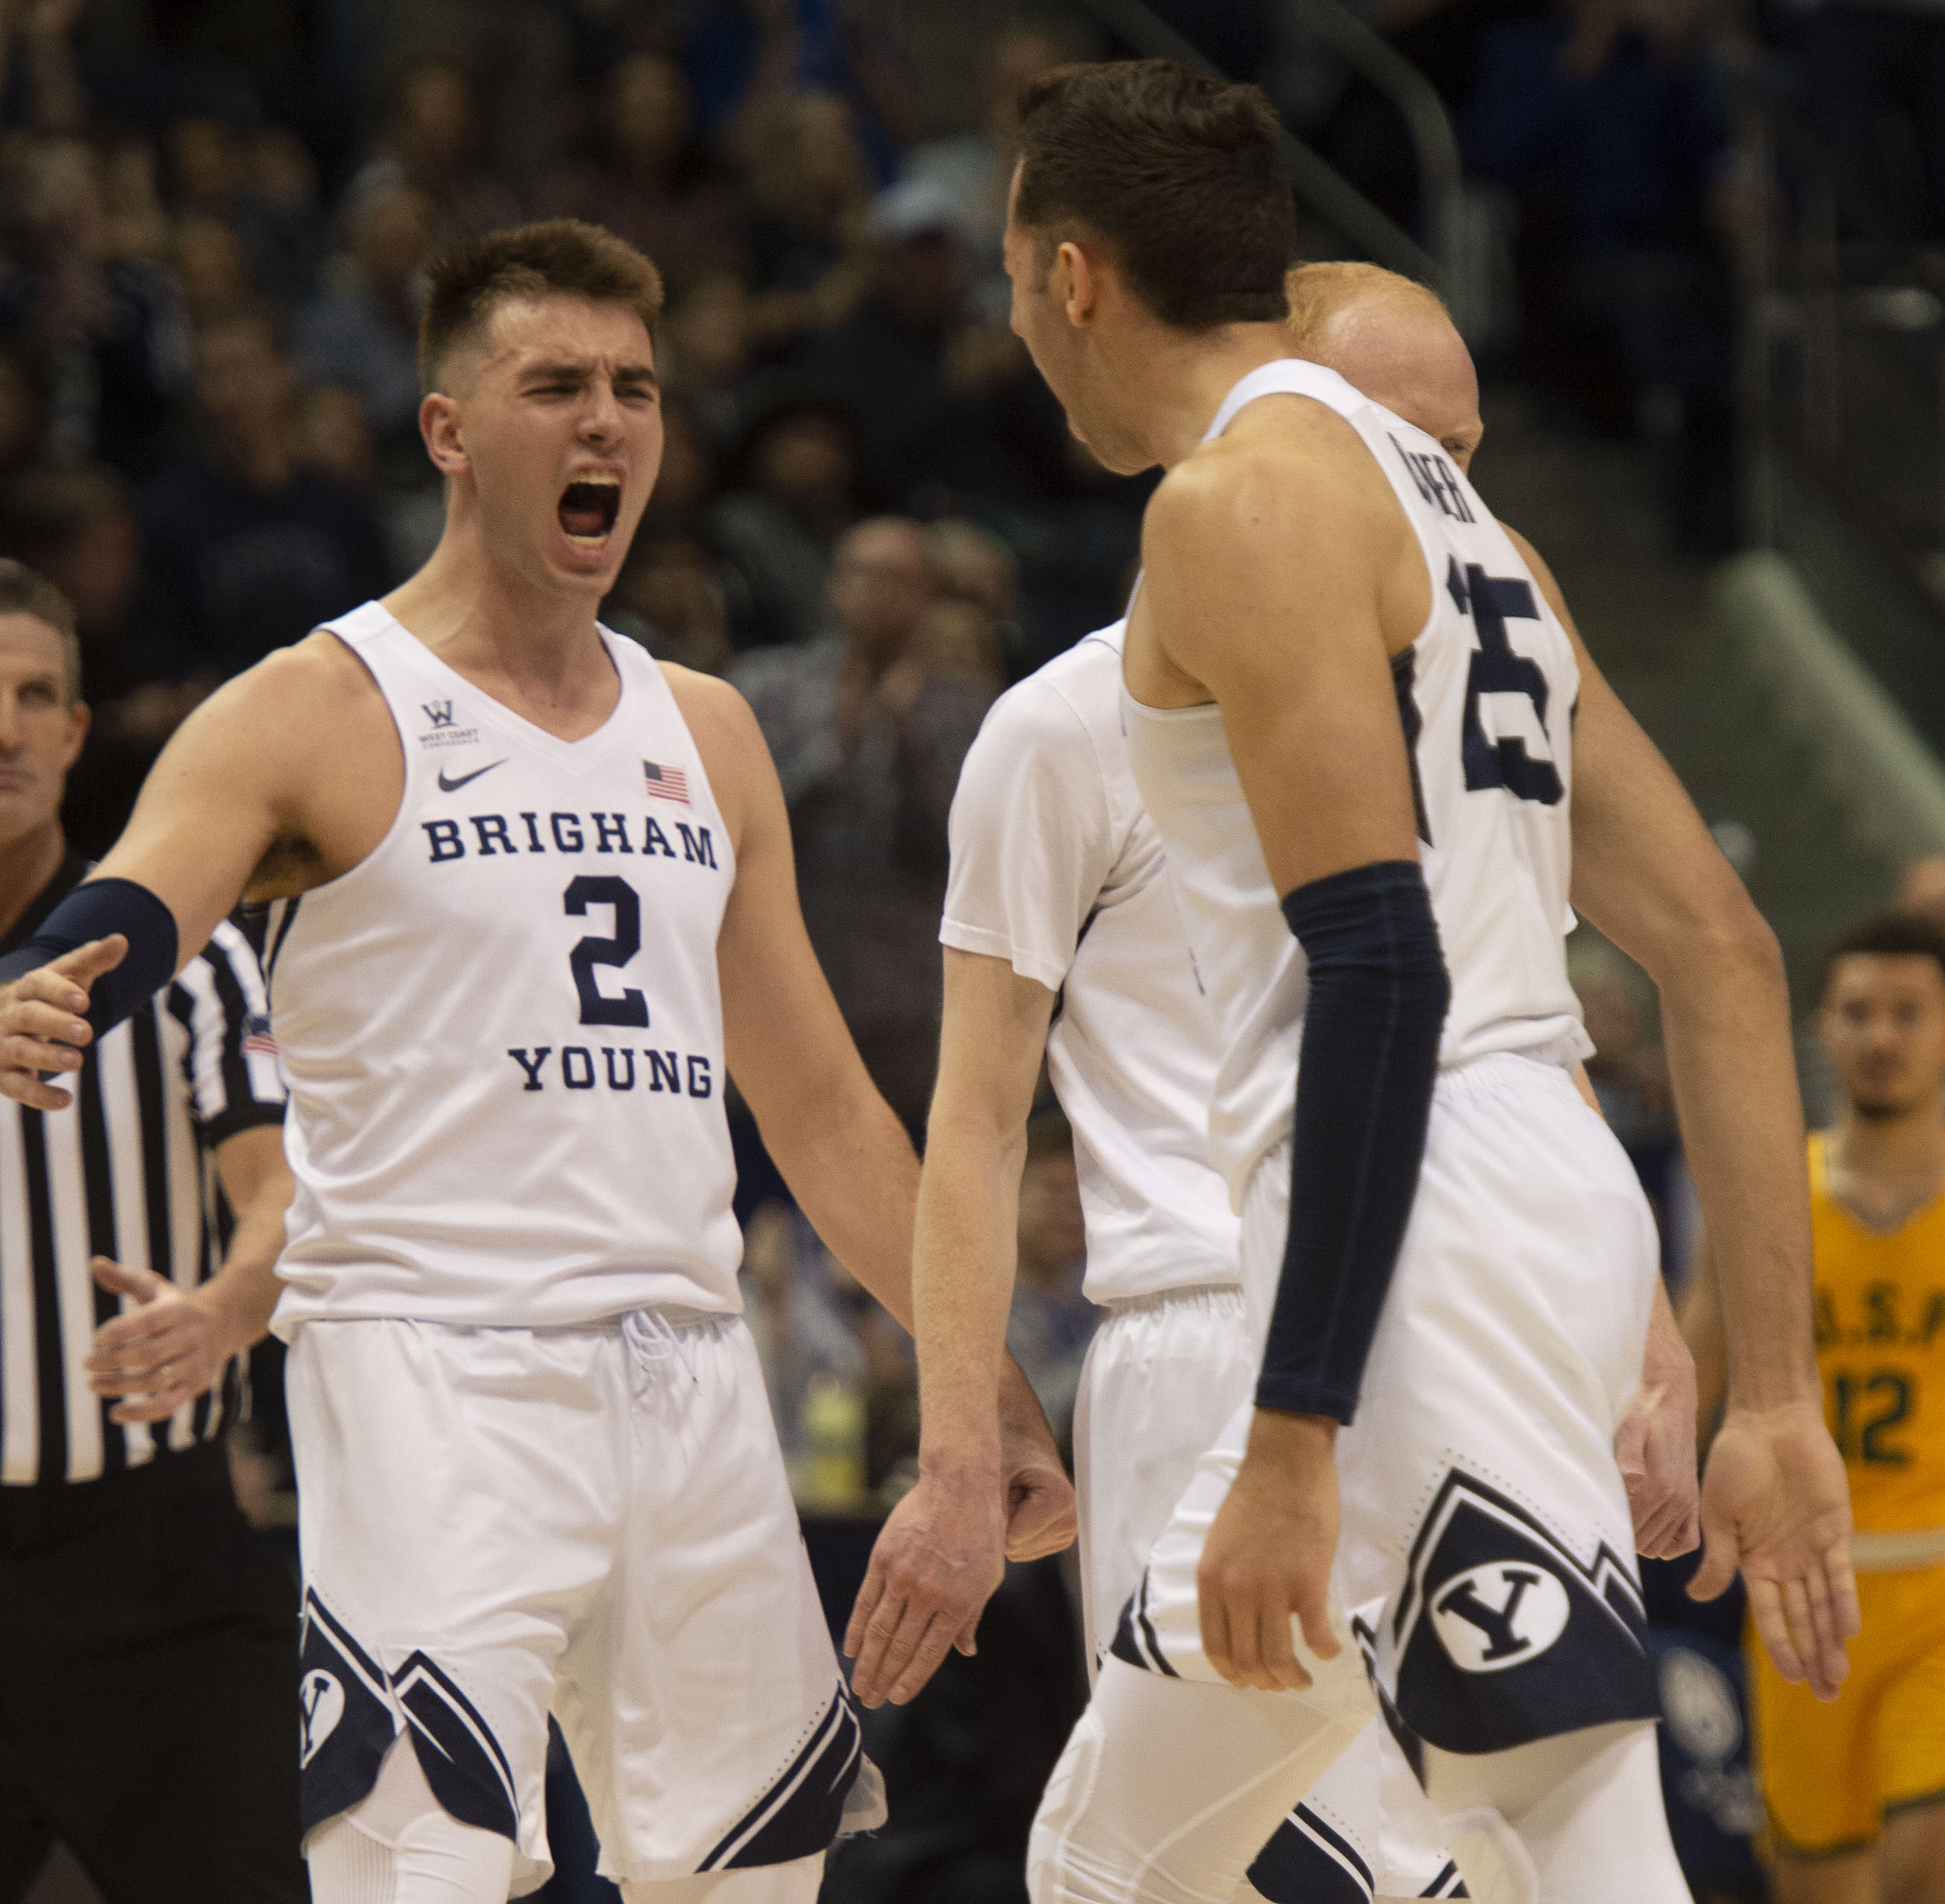 (Rick Egan  |  The Salt Lake Tribune)      Brigham Young guard Zac Seljaas (2) and  forward Gavin Baxter (25) celebrate a big Cougar lead with 10 minutes left in the game, in WCC basketball action between Brigham Young Cougars and San Francisco Dons, at the Marriott  Center, Thursday, February 21, 2018.